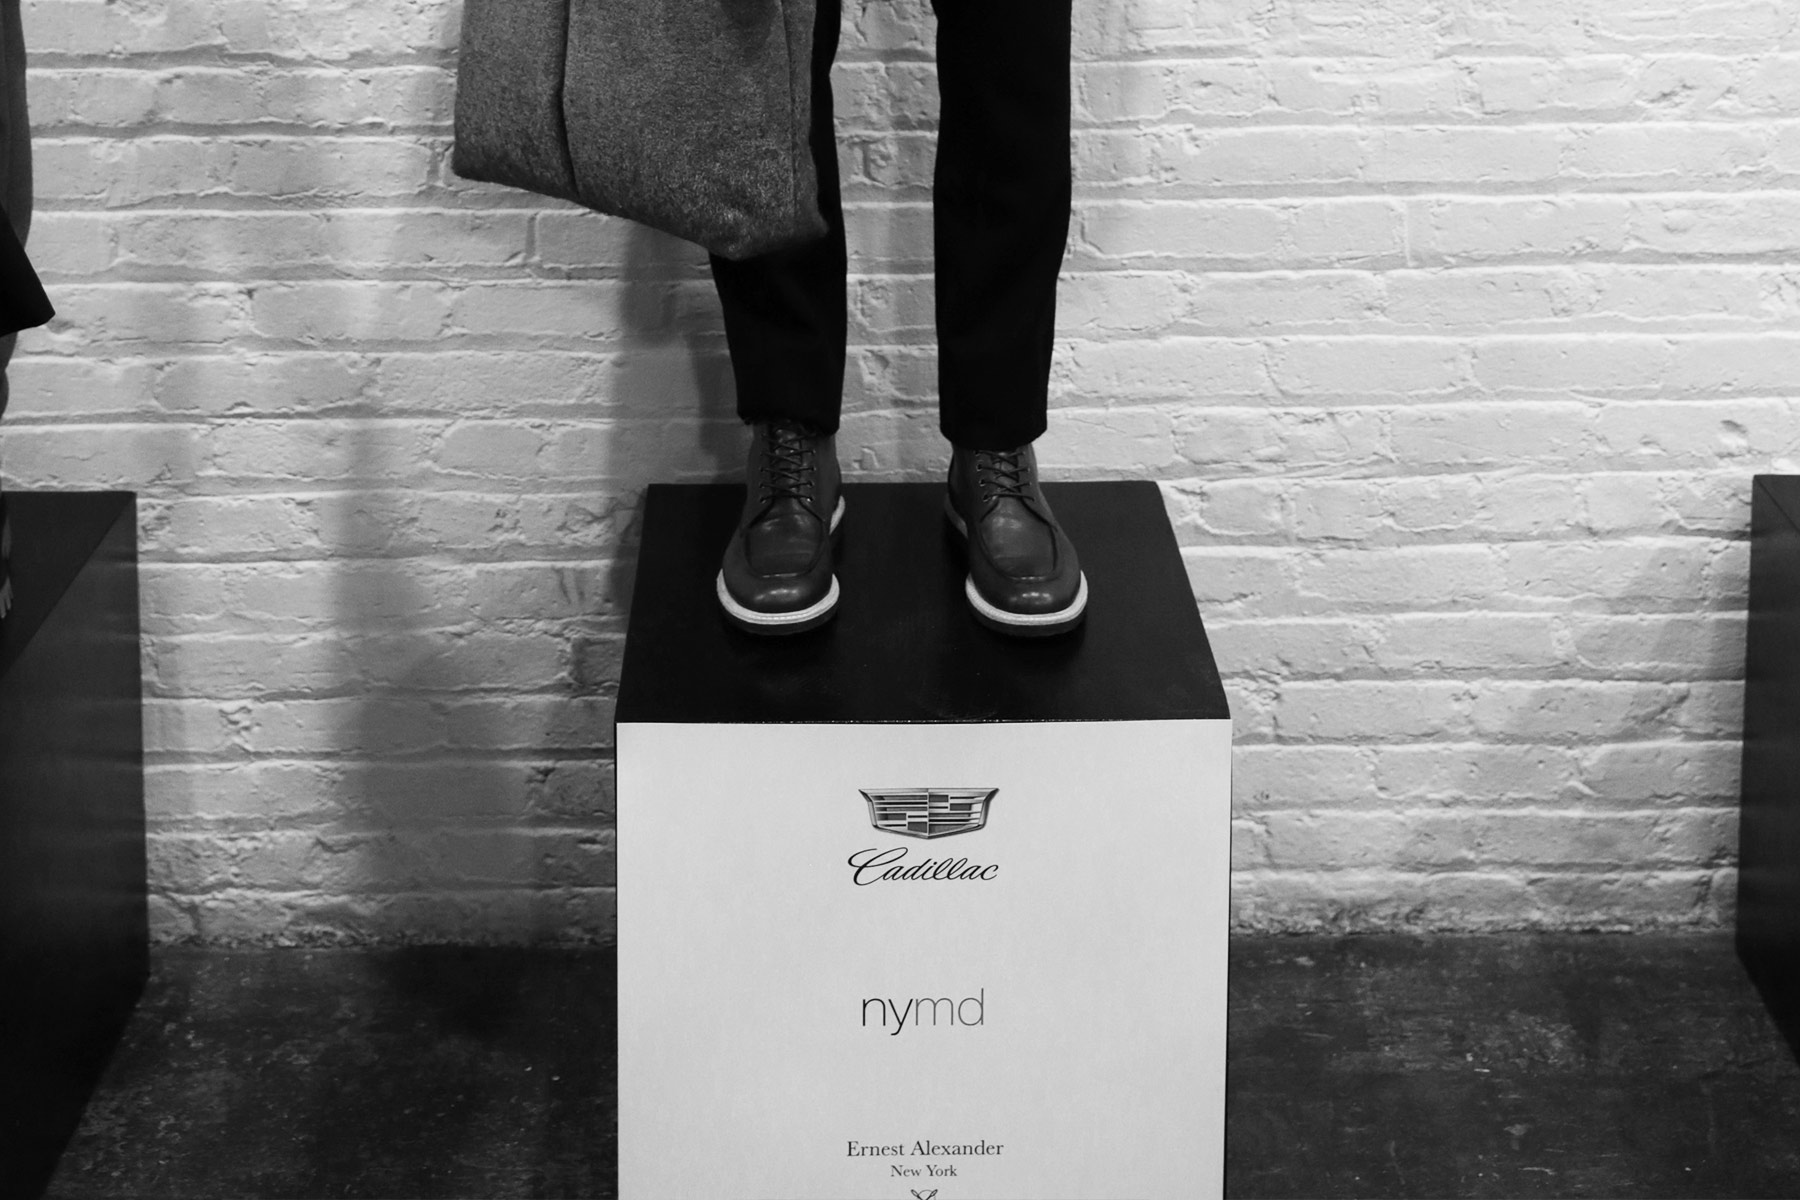 NYMD FW2015 Collections Presented by Cadillac